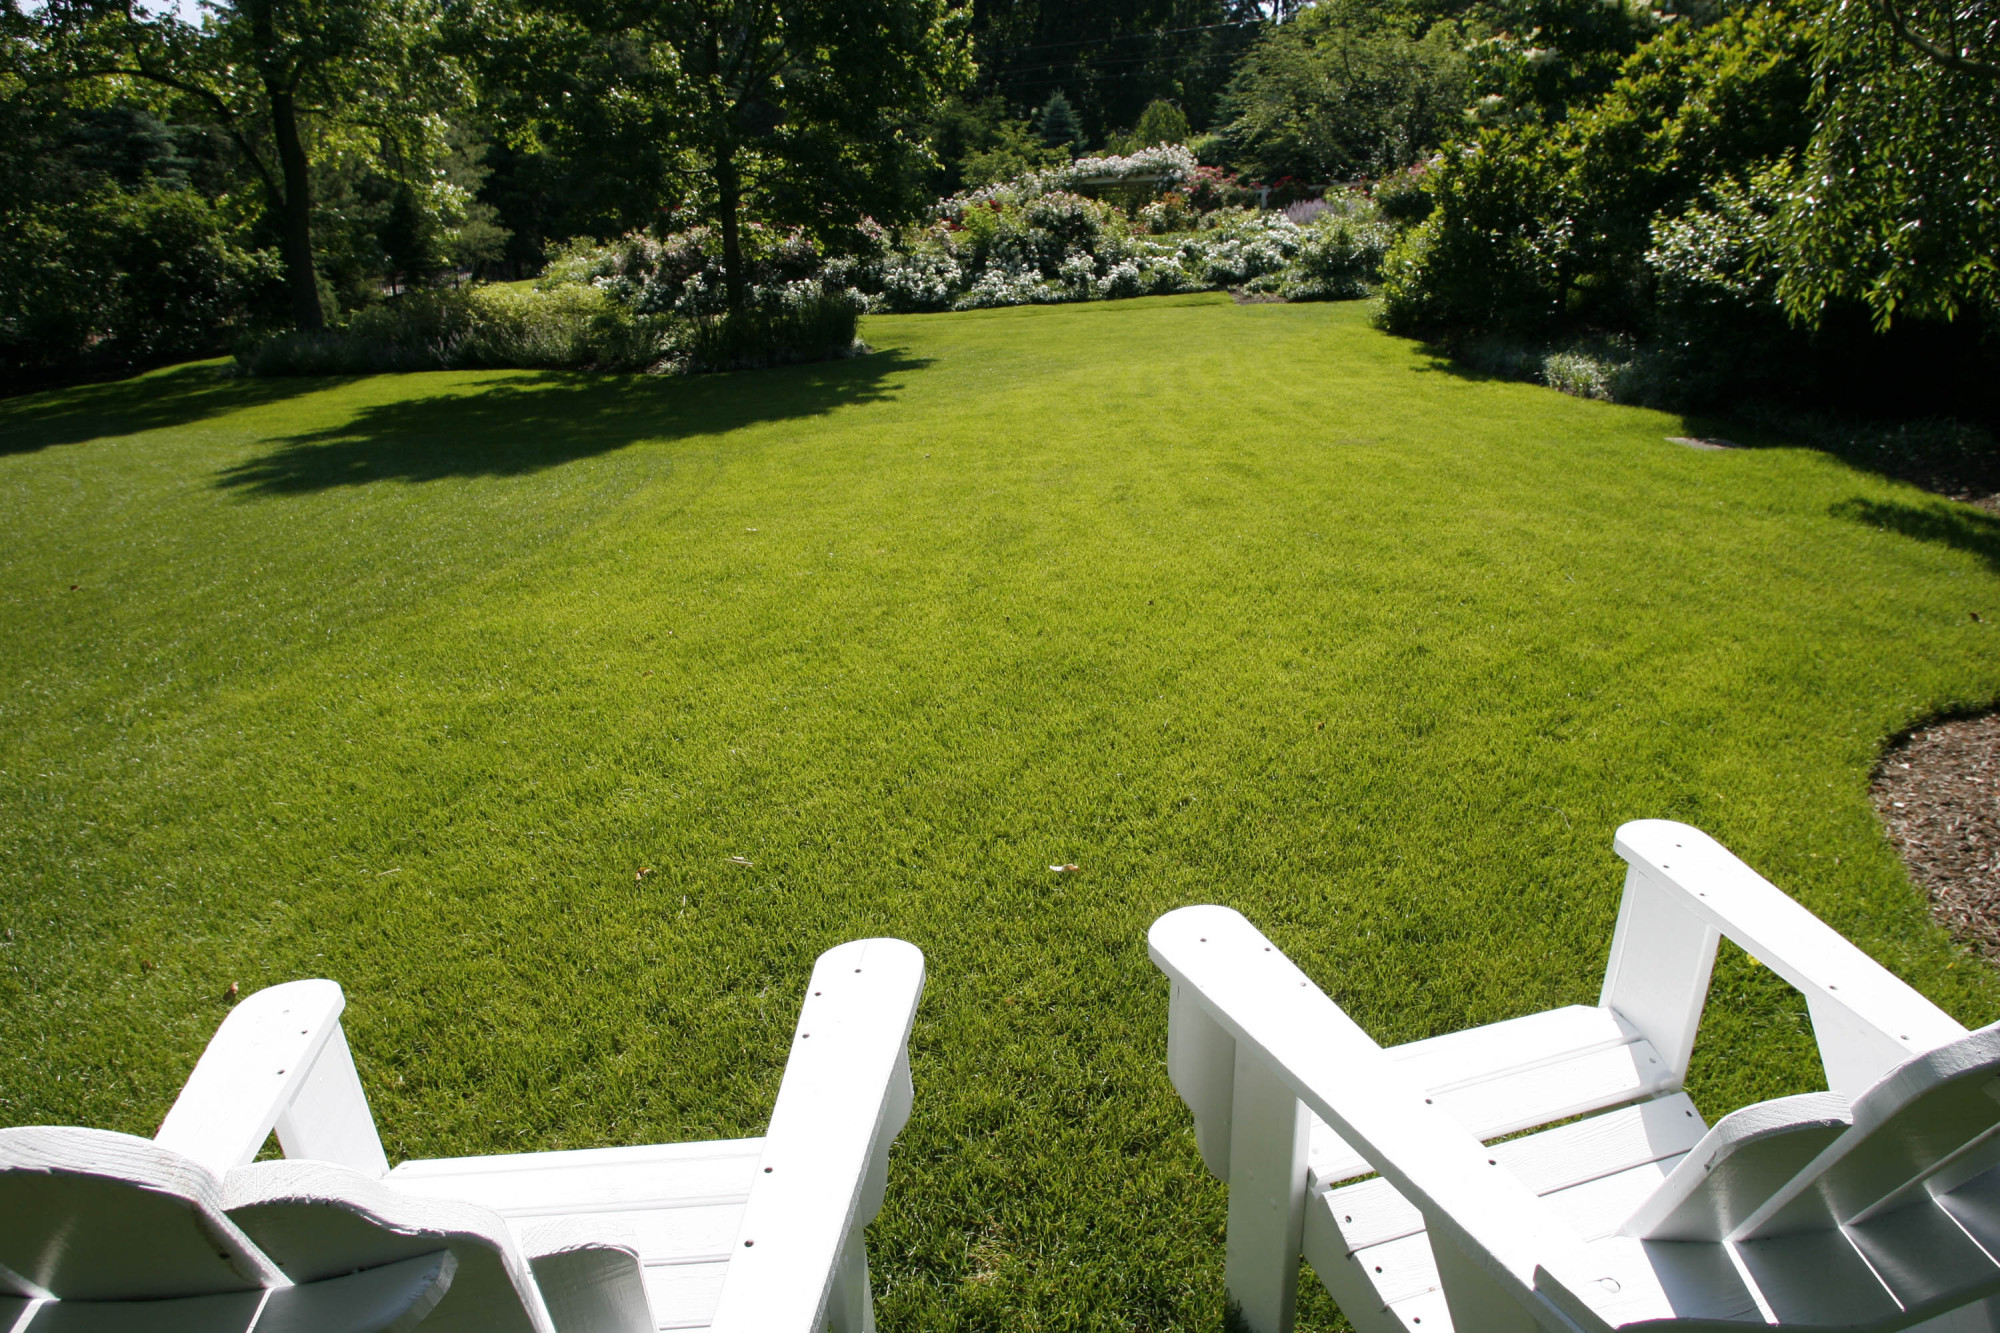 A view of the manicured lawn